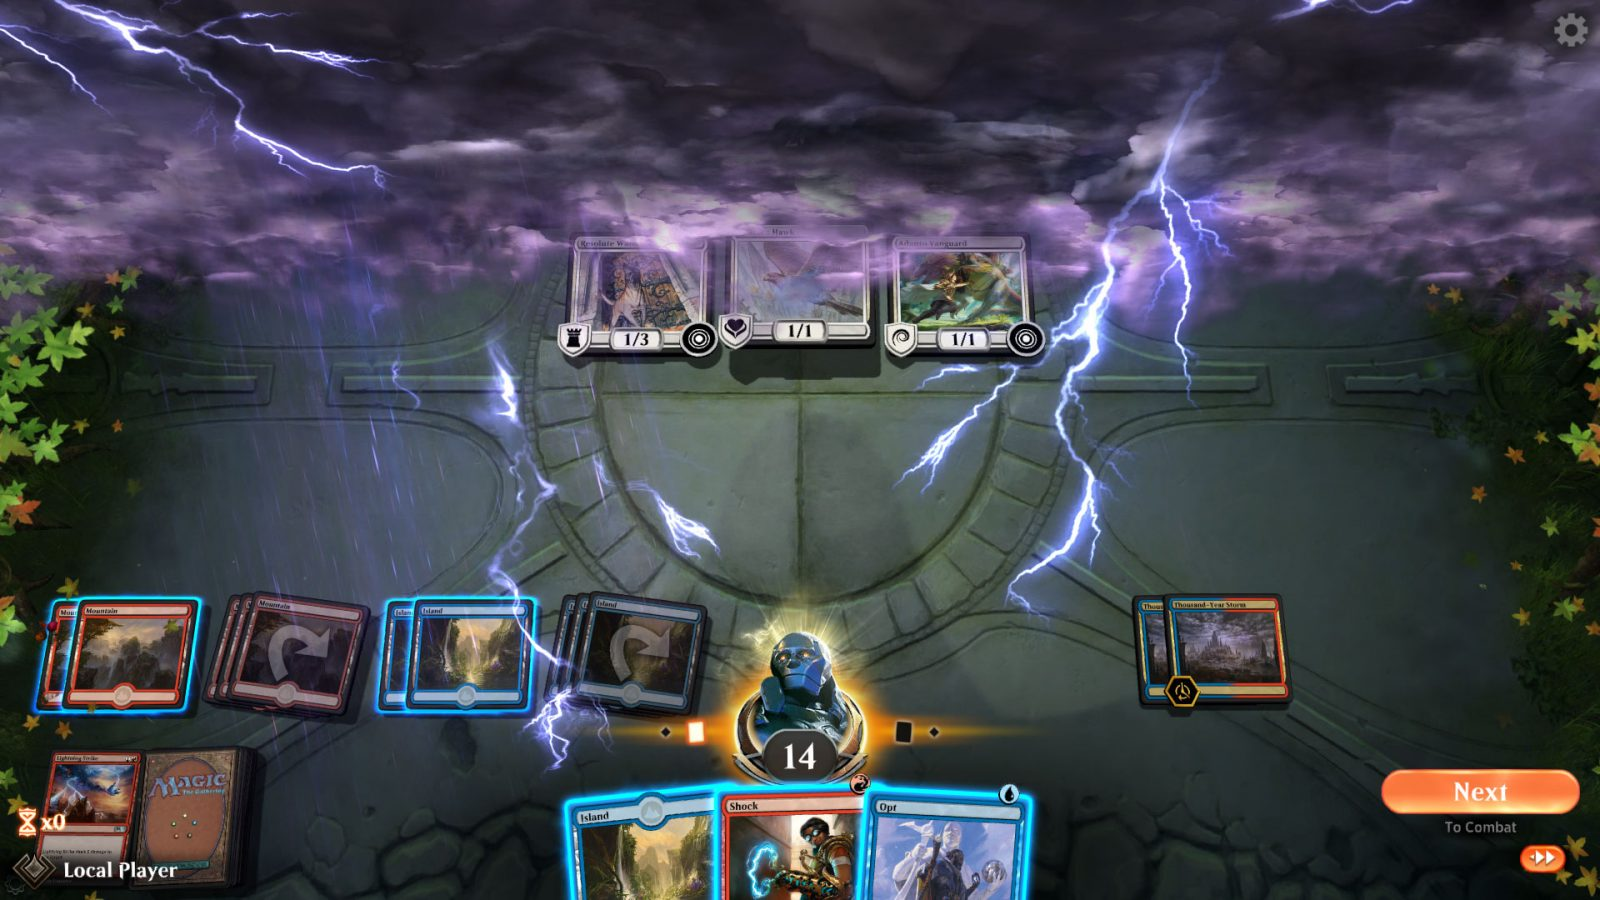 Magic: The Gathering's new European league starts up today